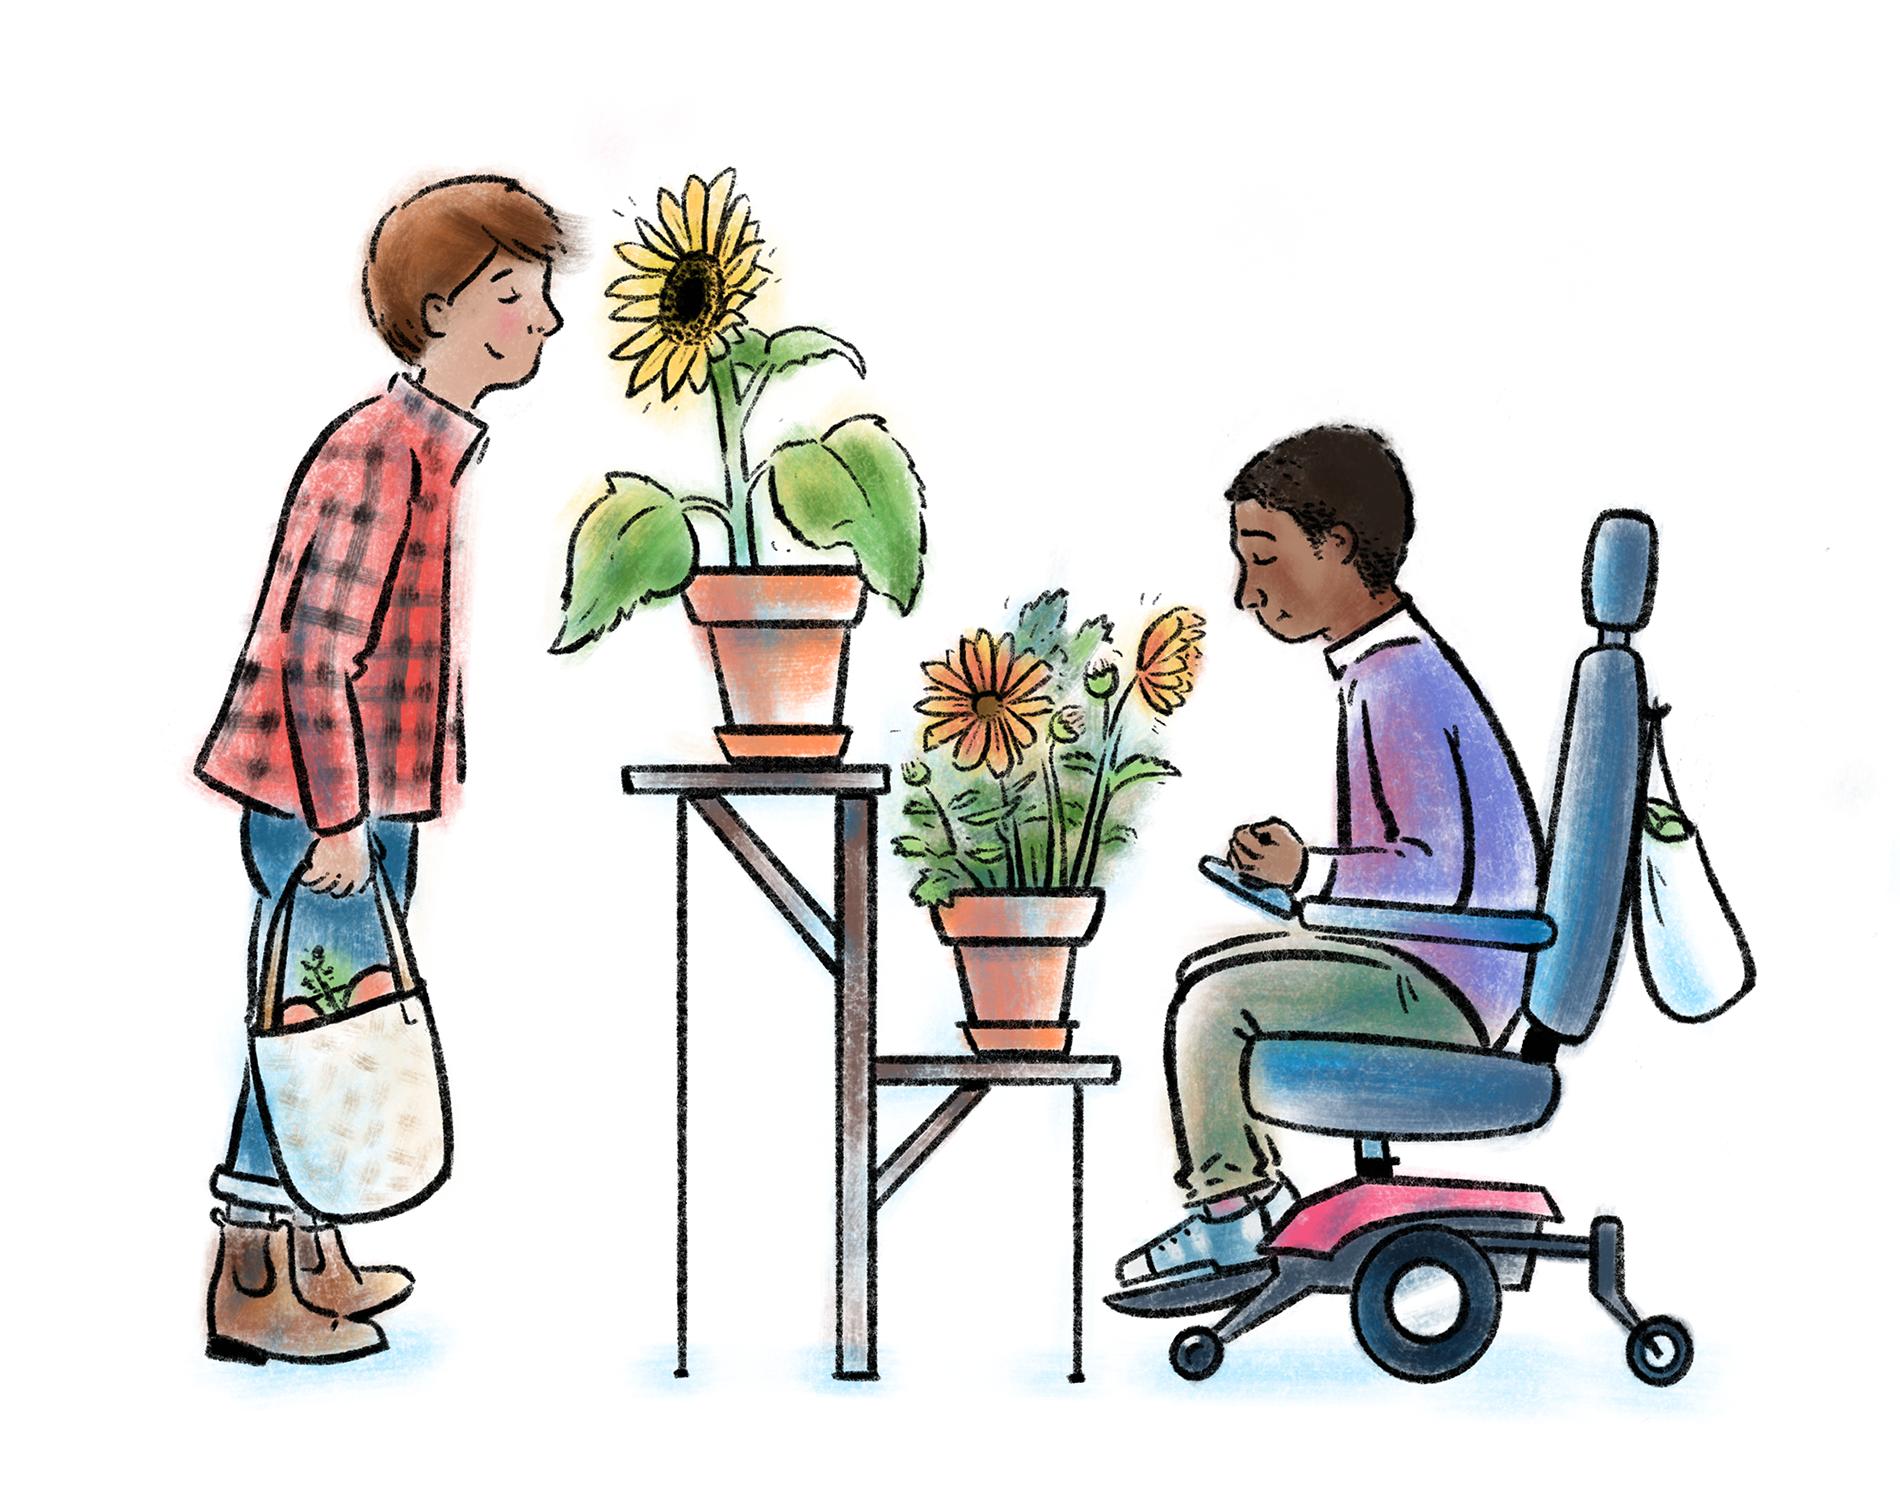 A person using a wheelchair and a person standing each enjoying the aroma of some potted flowers.